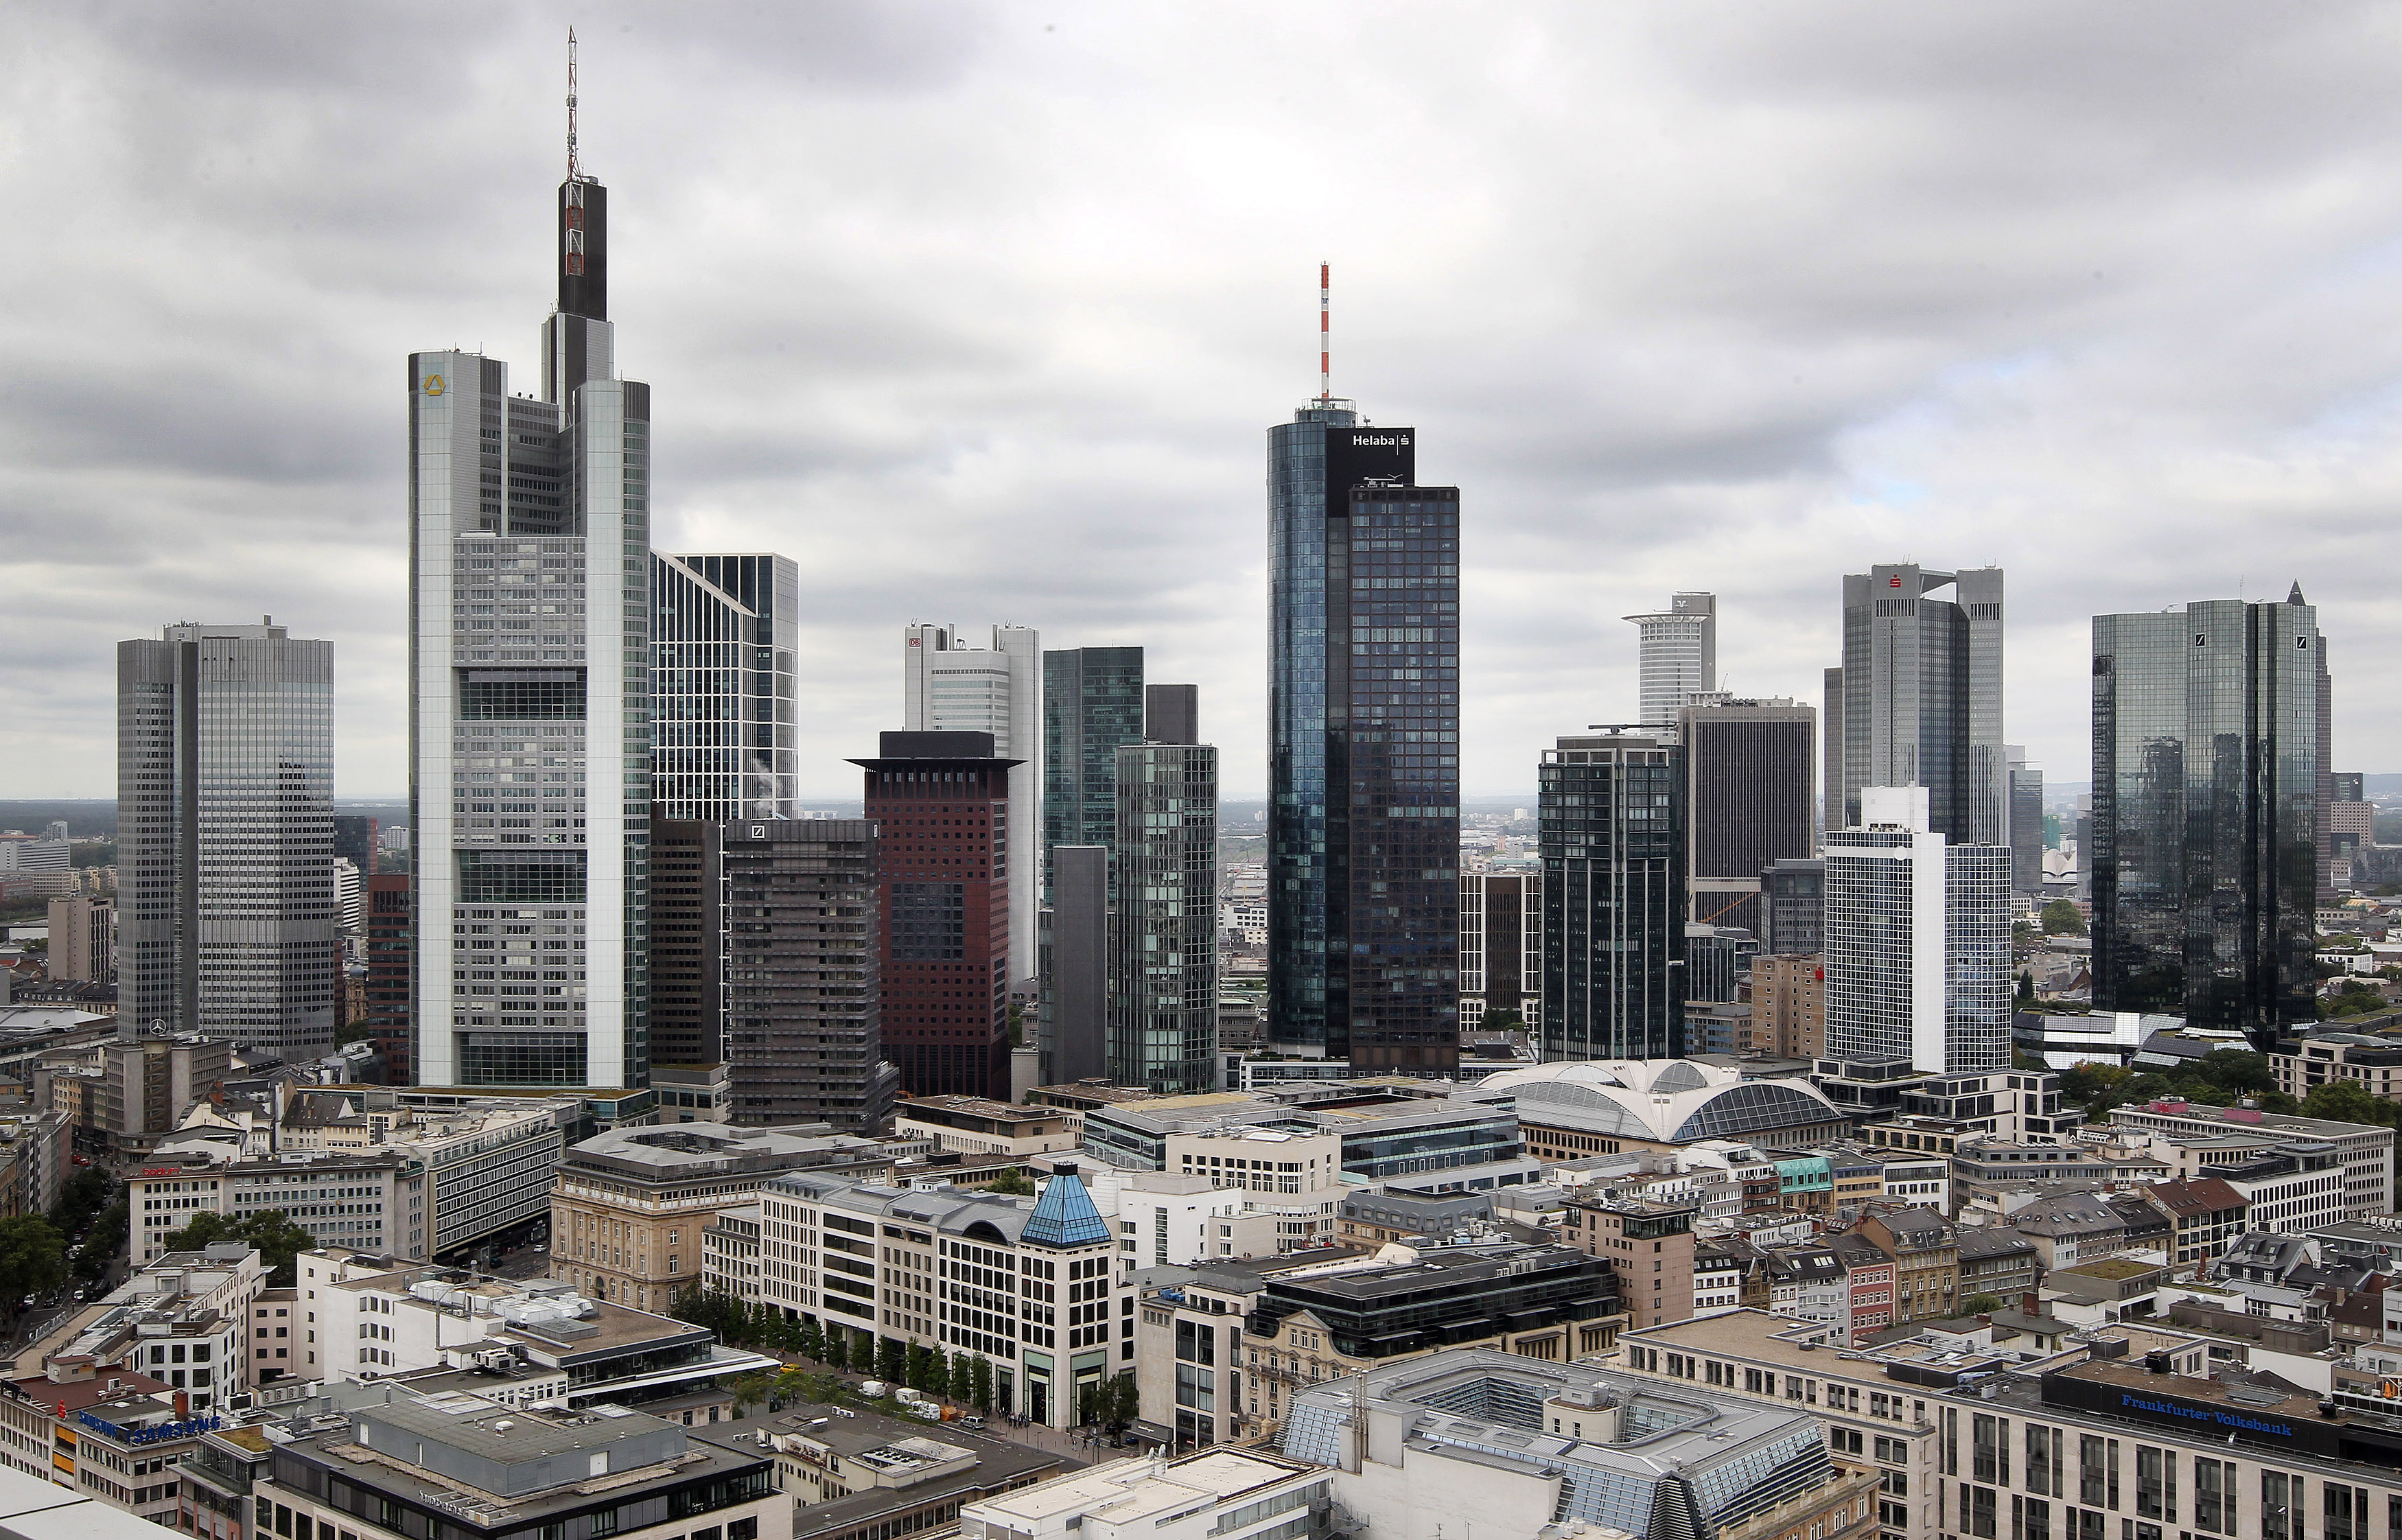 The skyline of Frankfurt am Main, Germany's financial hub, is pictured on Aug. 22, 2016. DANIEL ROLAND/AFP/Getty Images